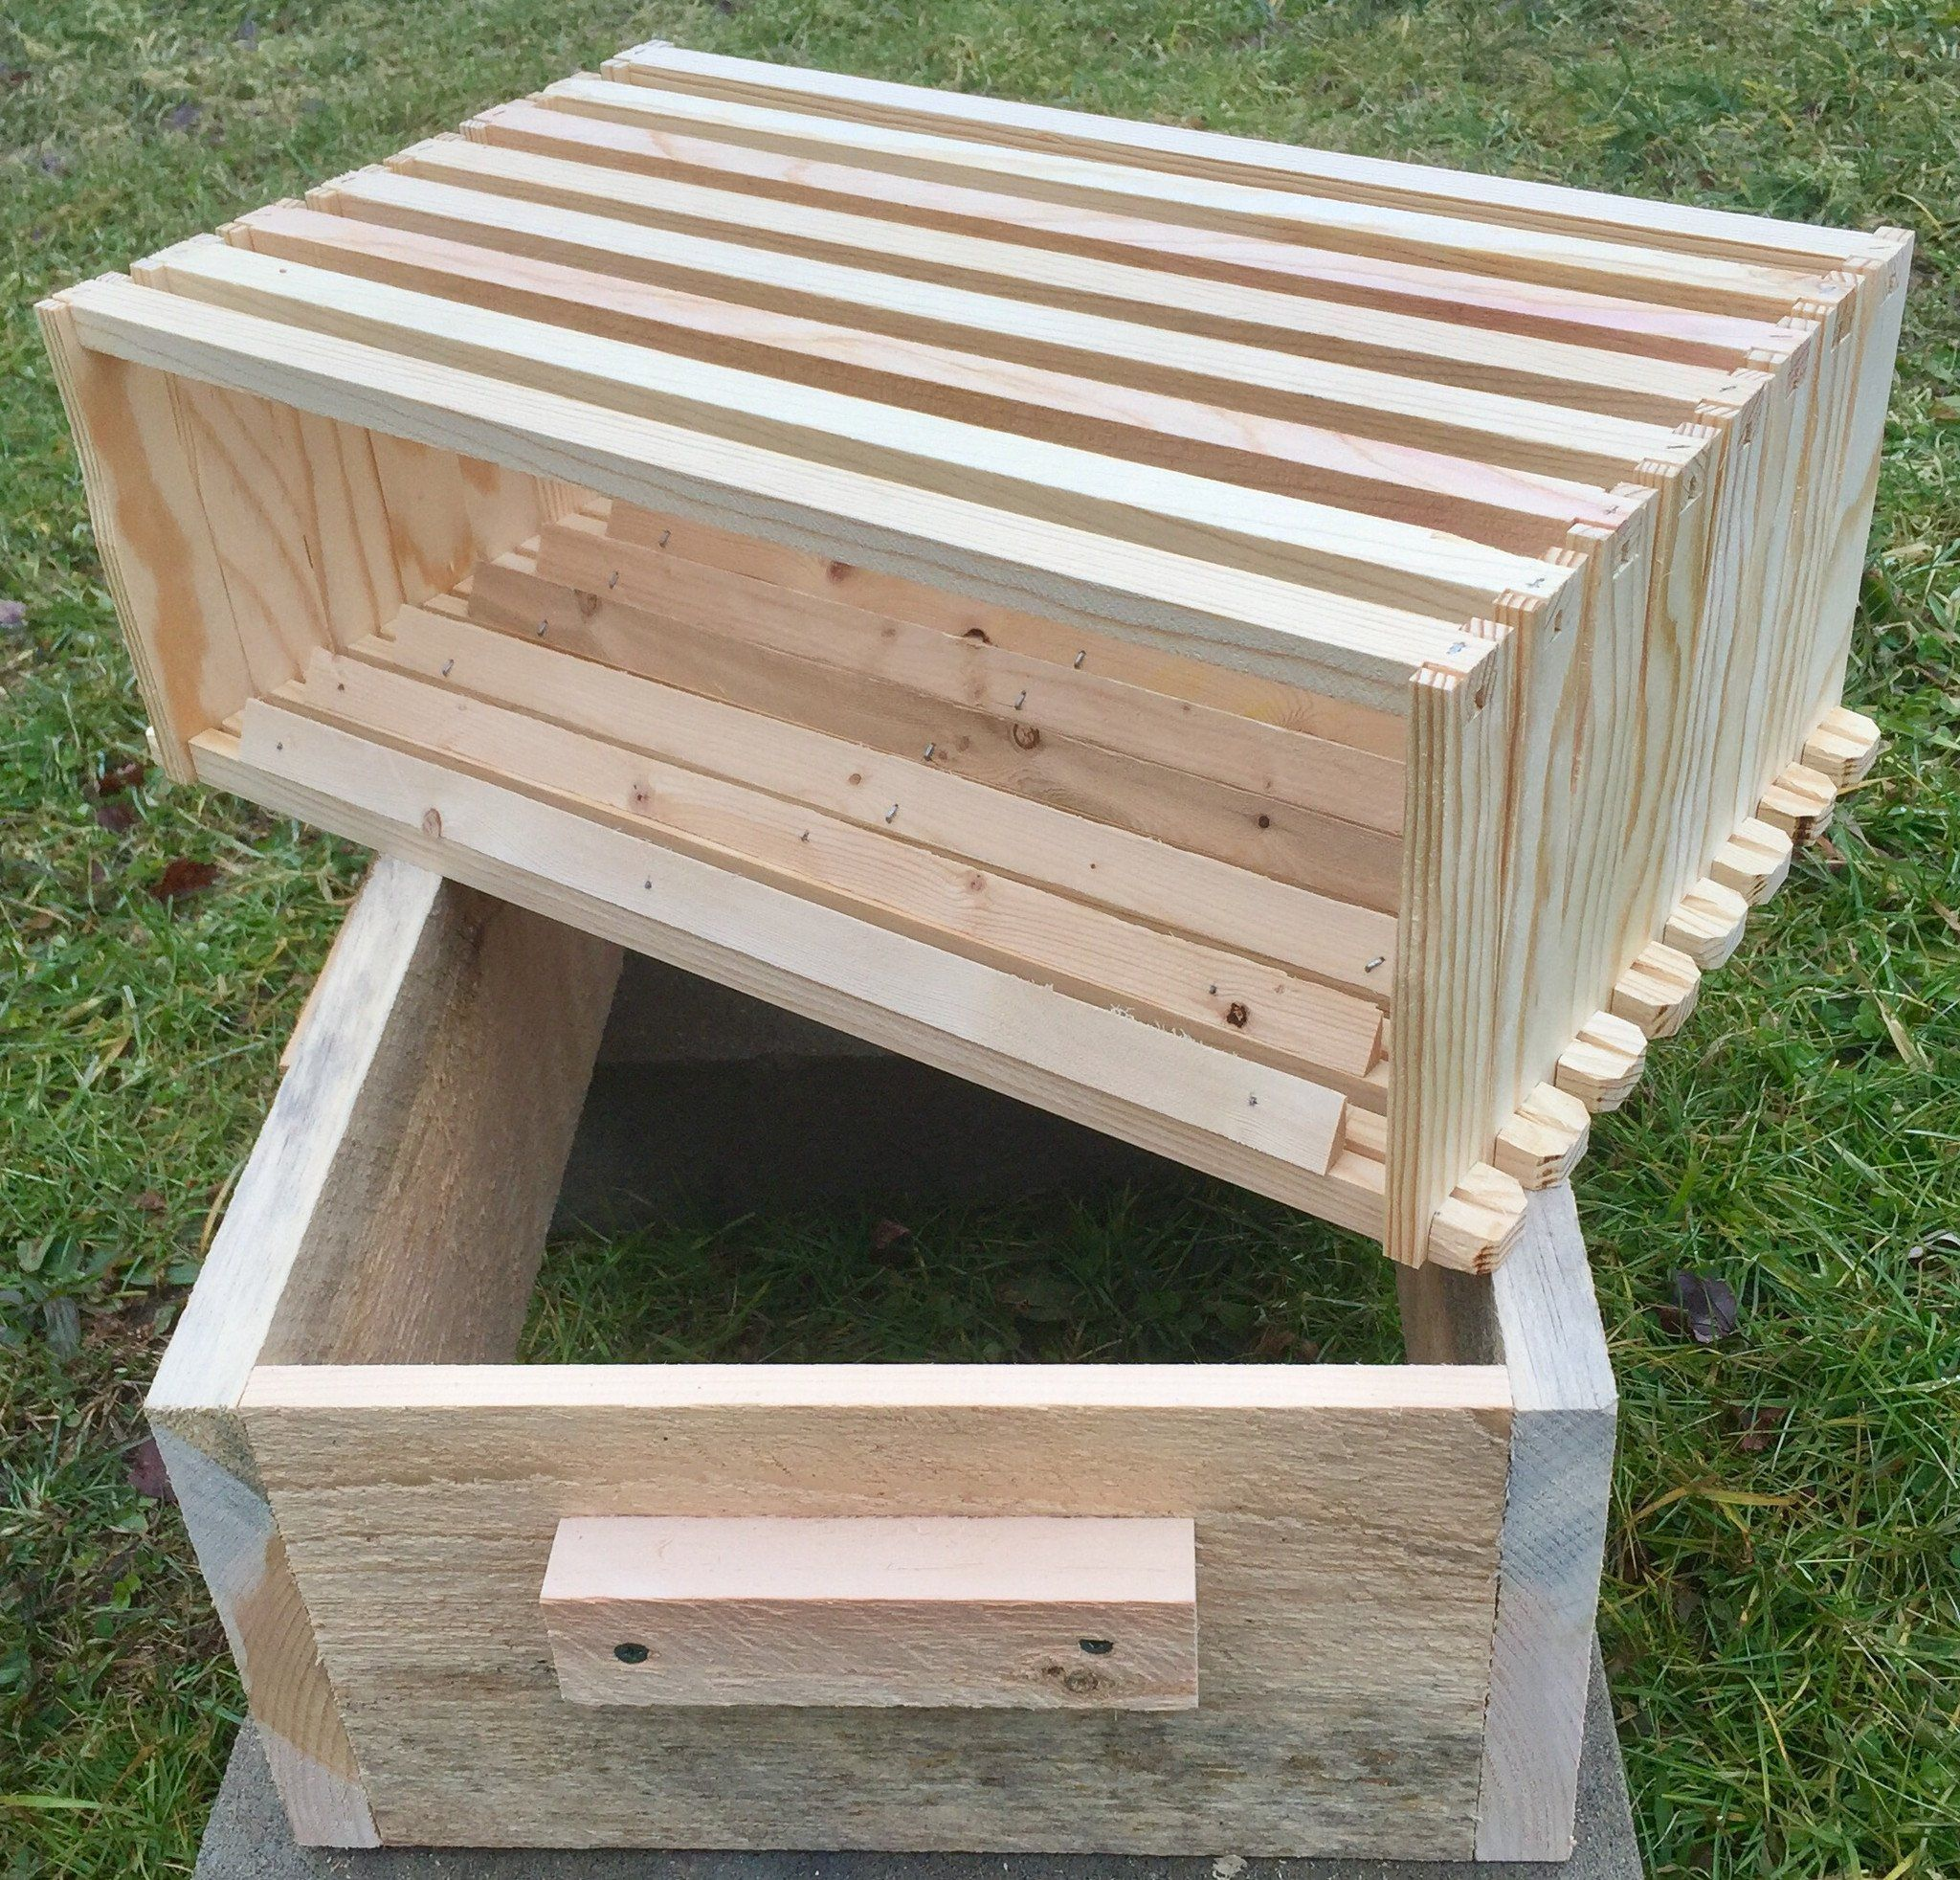 Tri Gable Lea Easier Langstroth Hive Kit 8 Frame Foundationless Langstroth Hive Hives Bee Hives For Sale